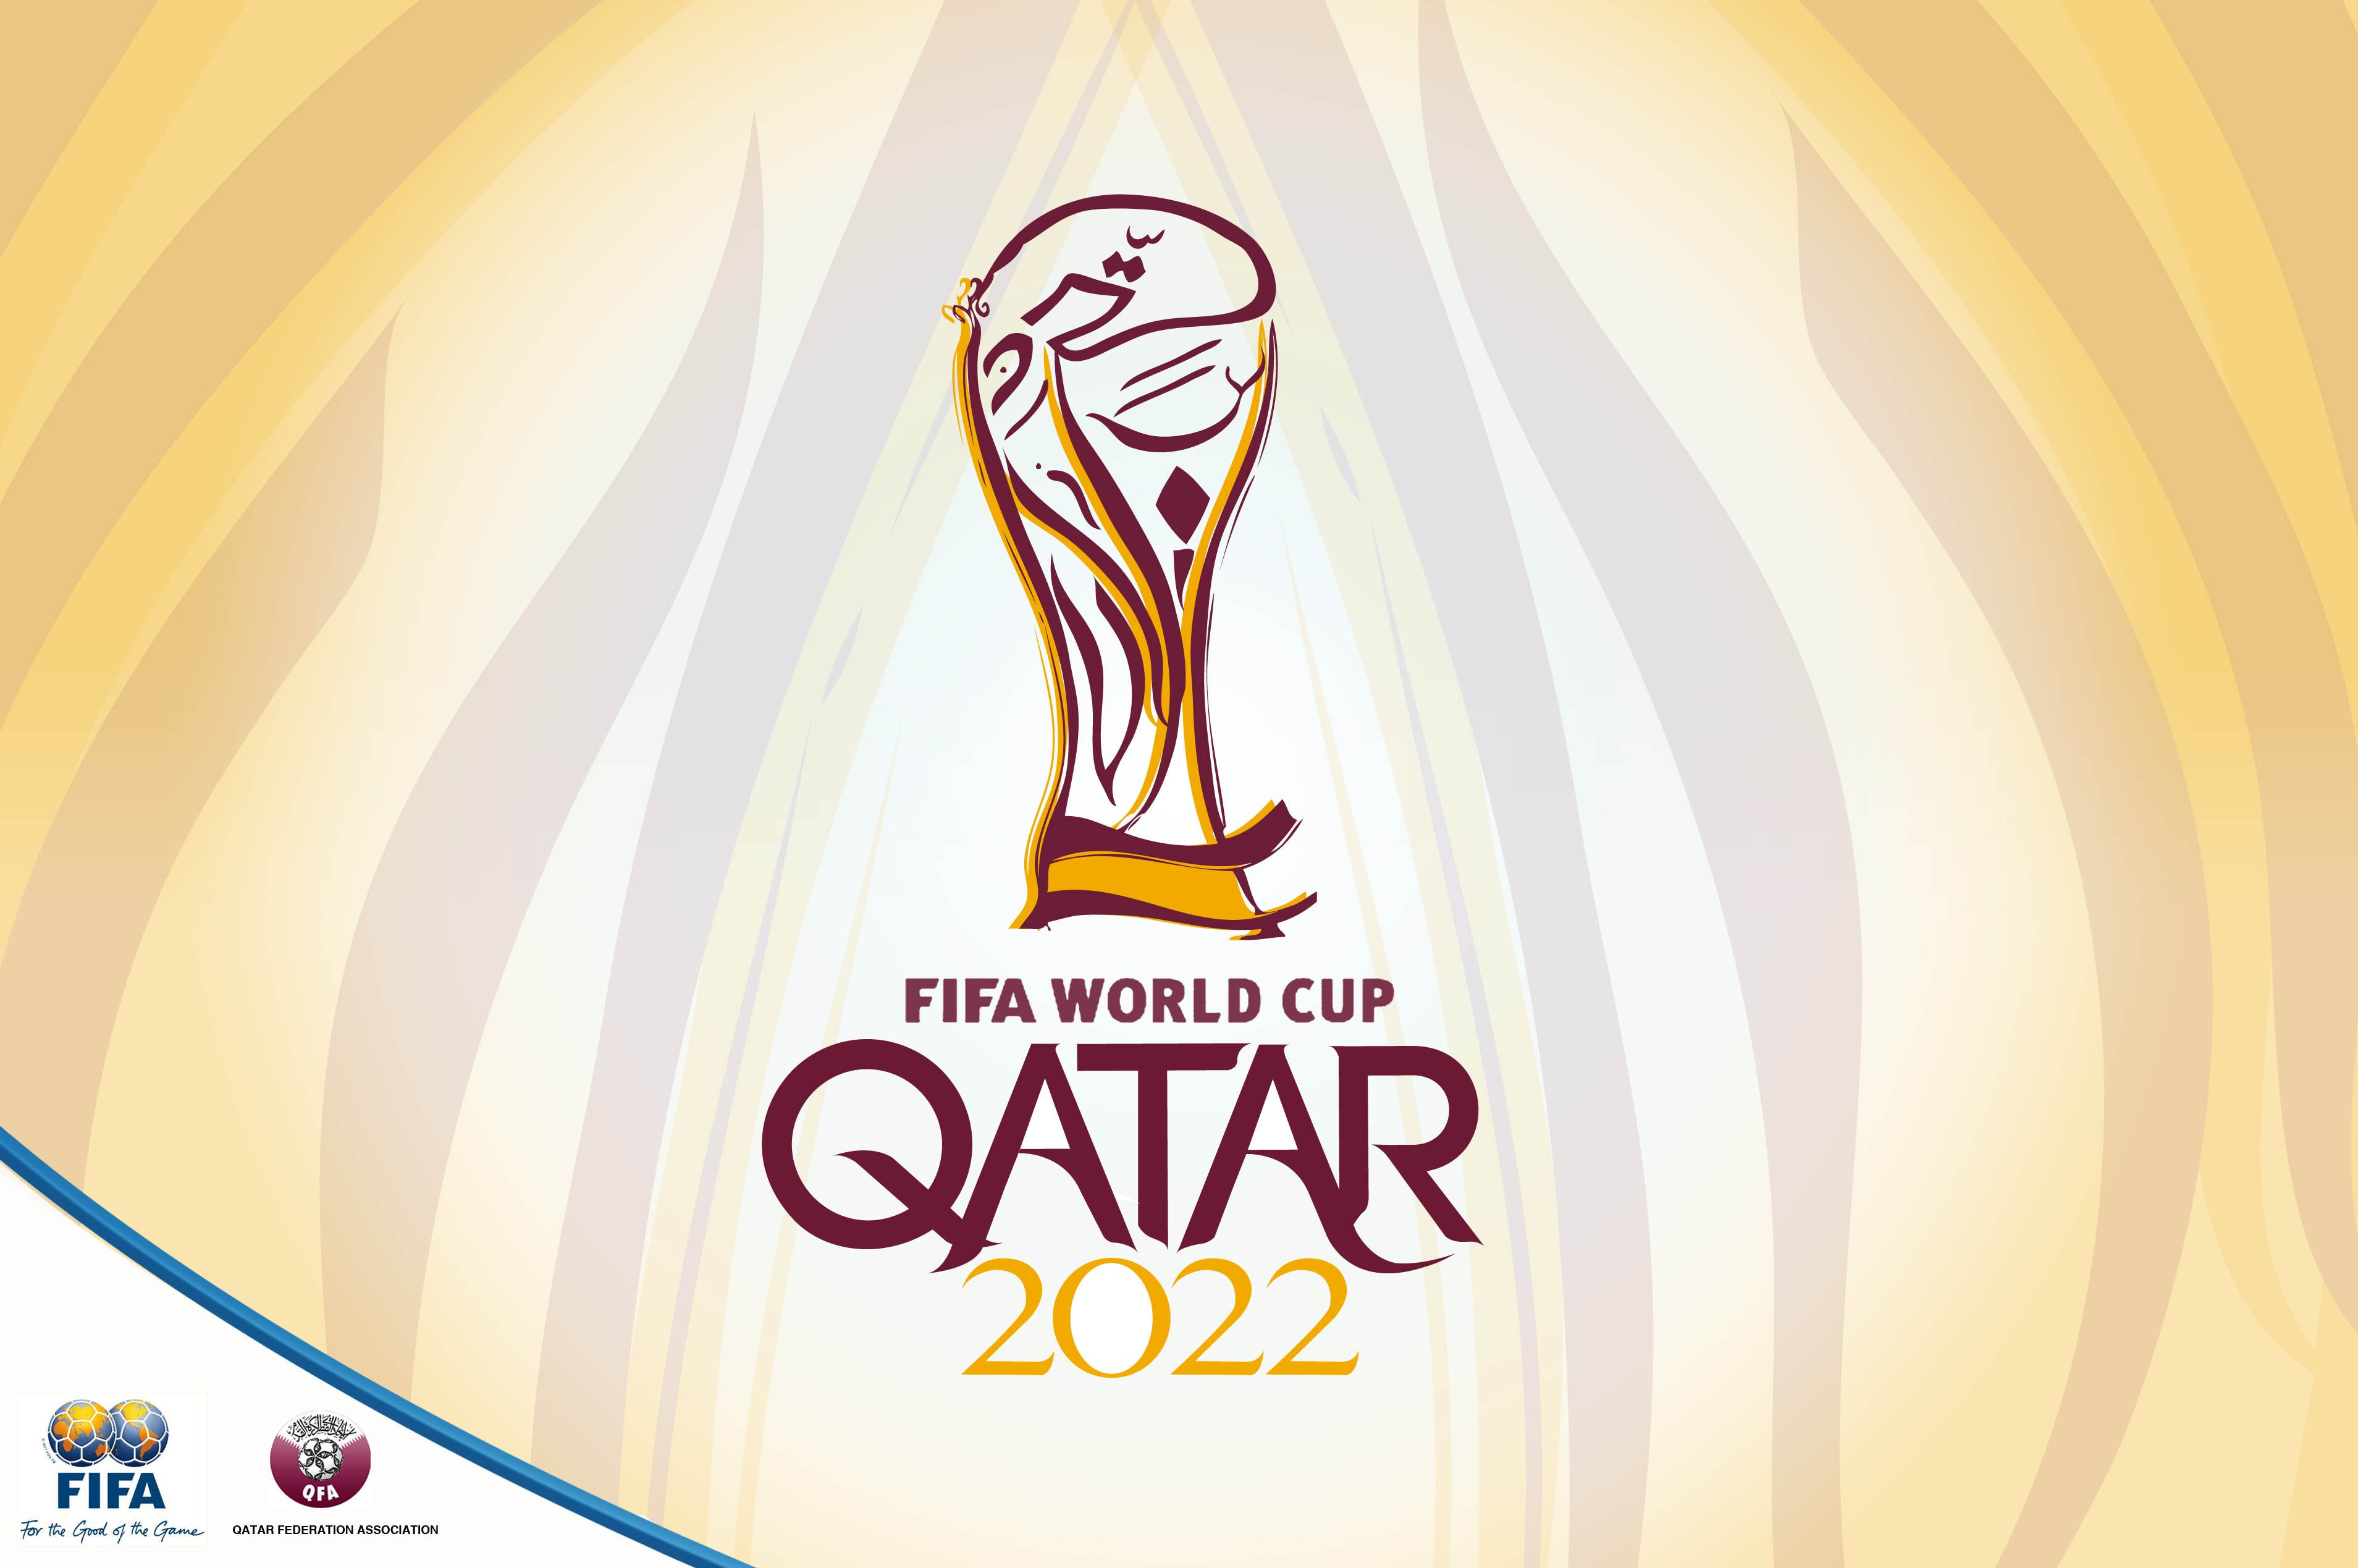 FIFA Confirms Qatar 2022 World Cup Will Hold In November/December